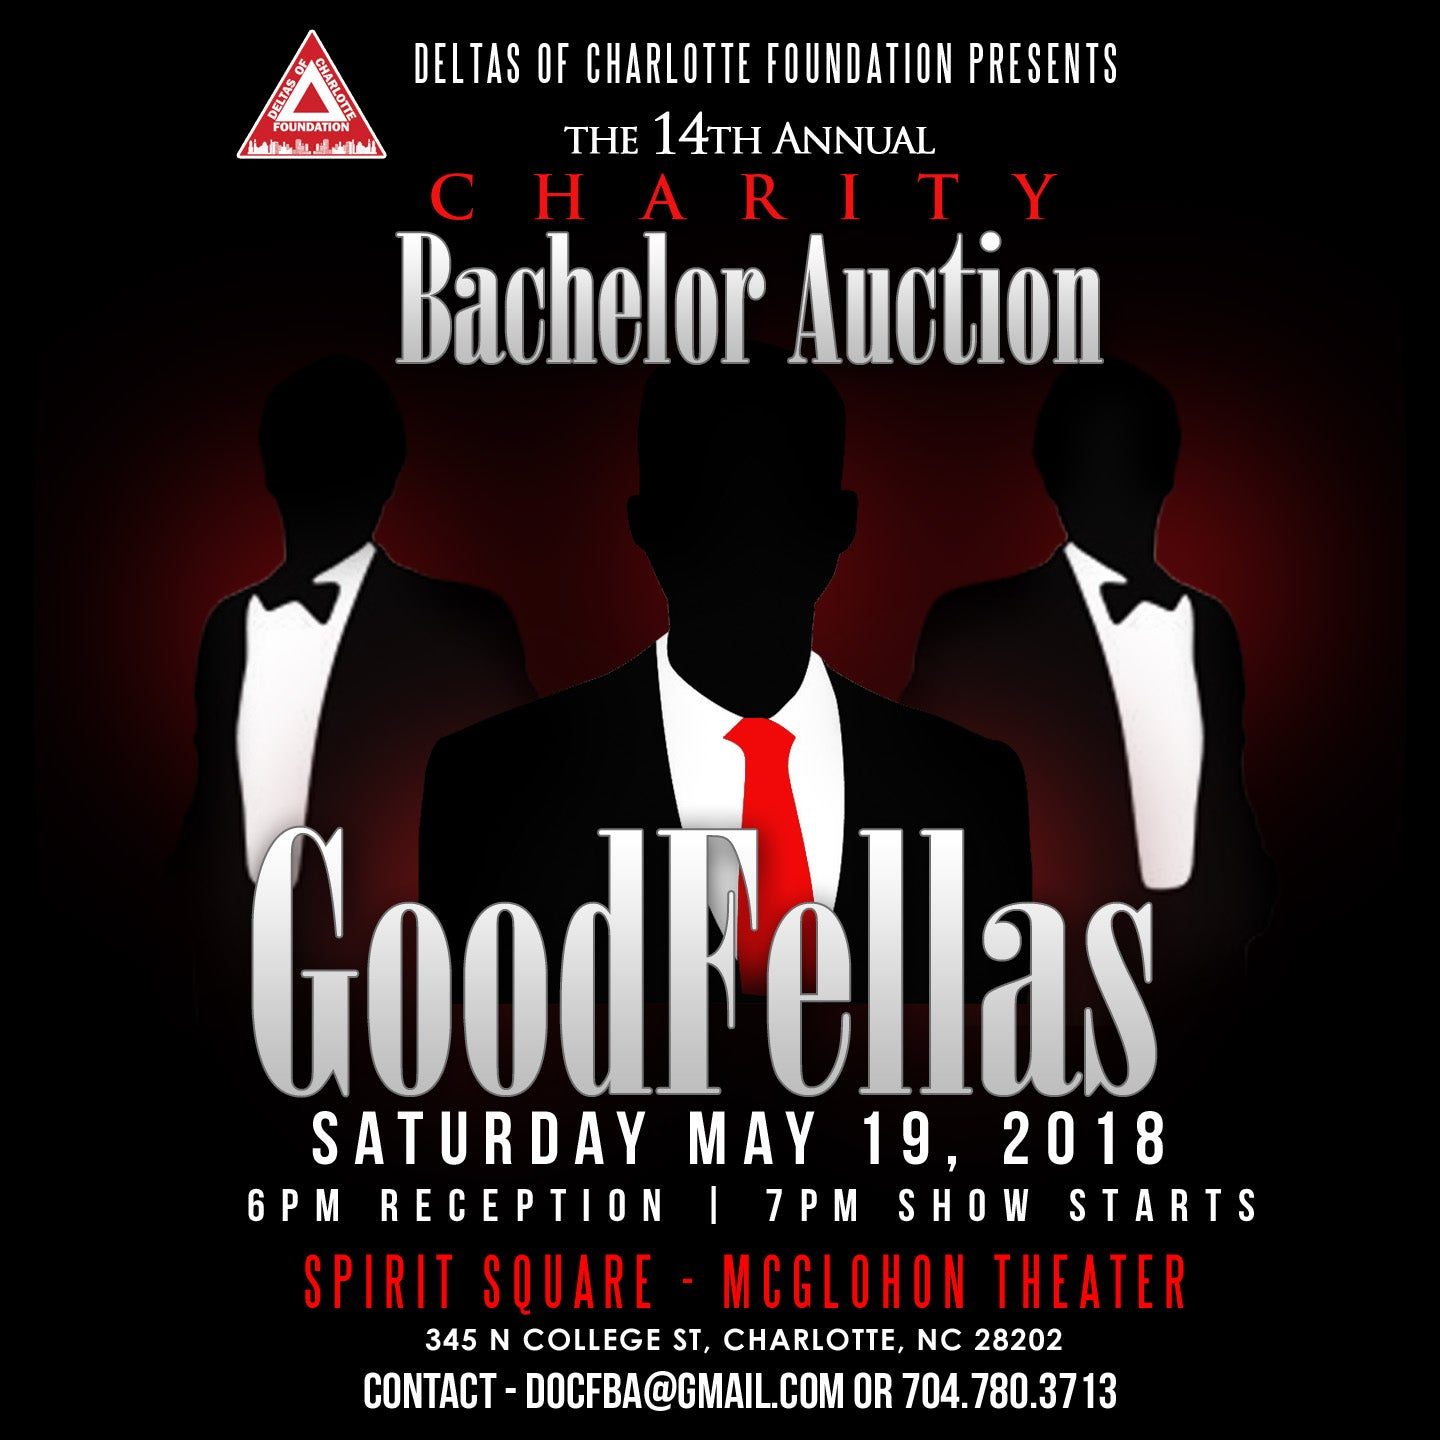 The 14th Annual Charity Bachelor Auction